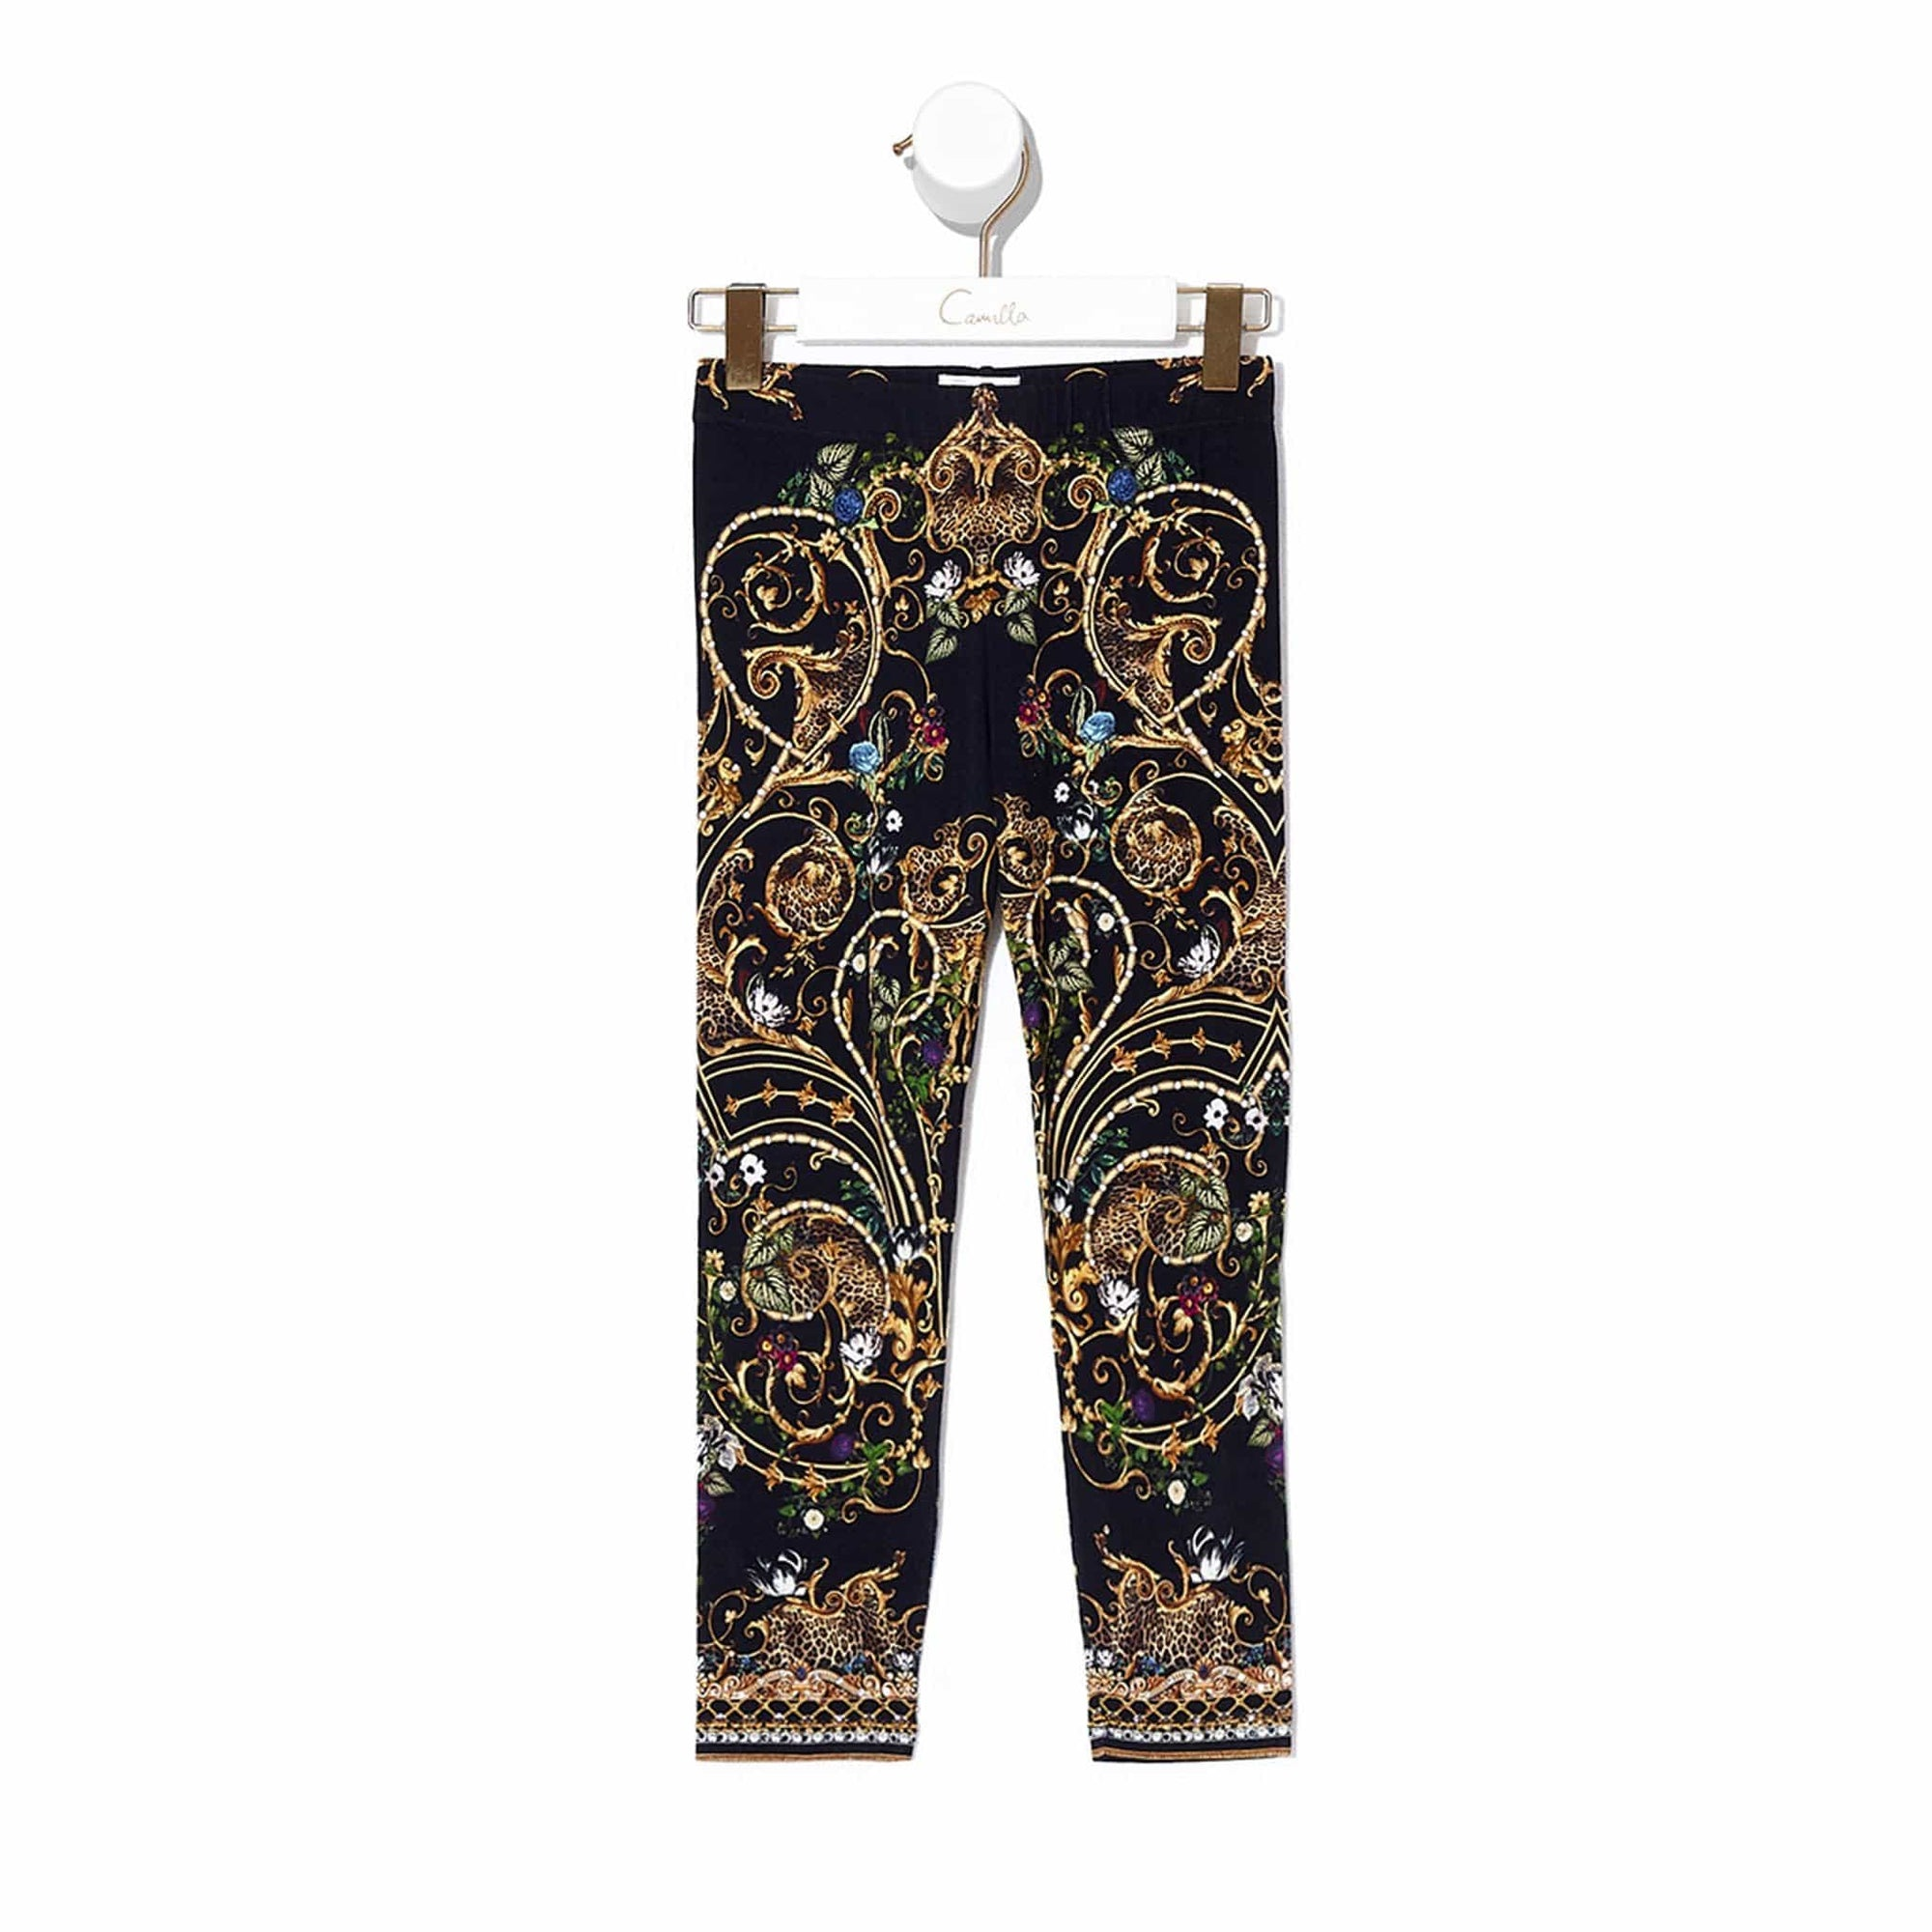 Camilla Studio 54 Kids Leggings